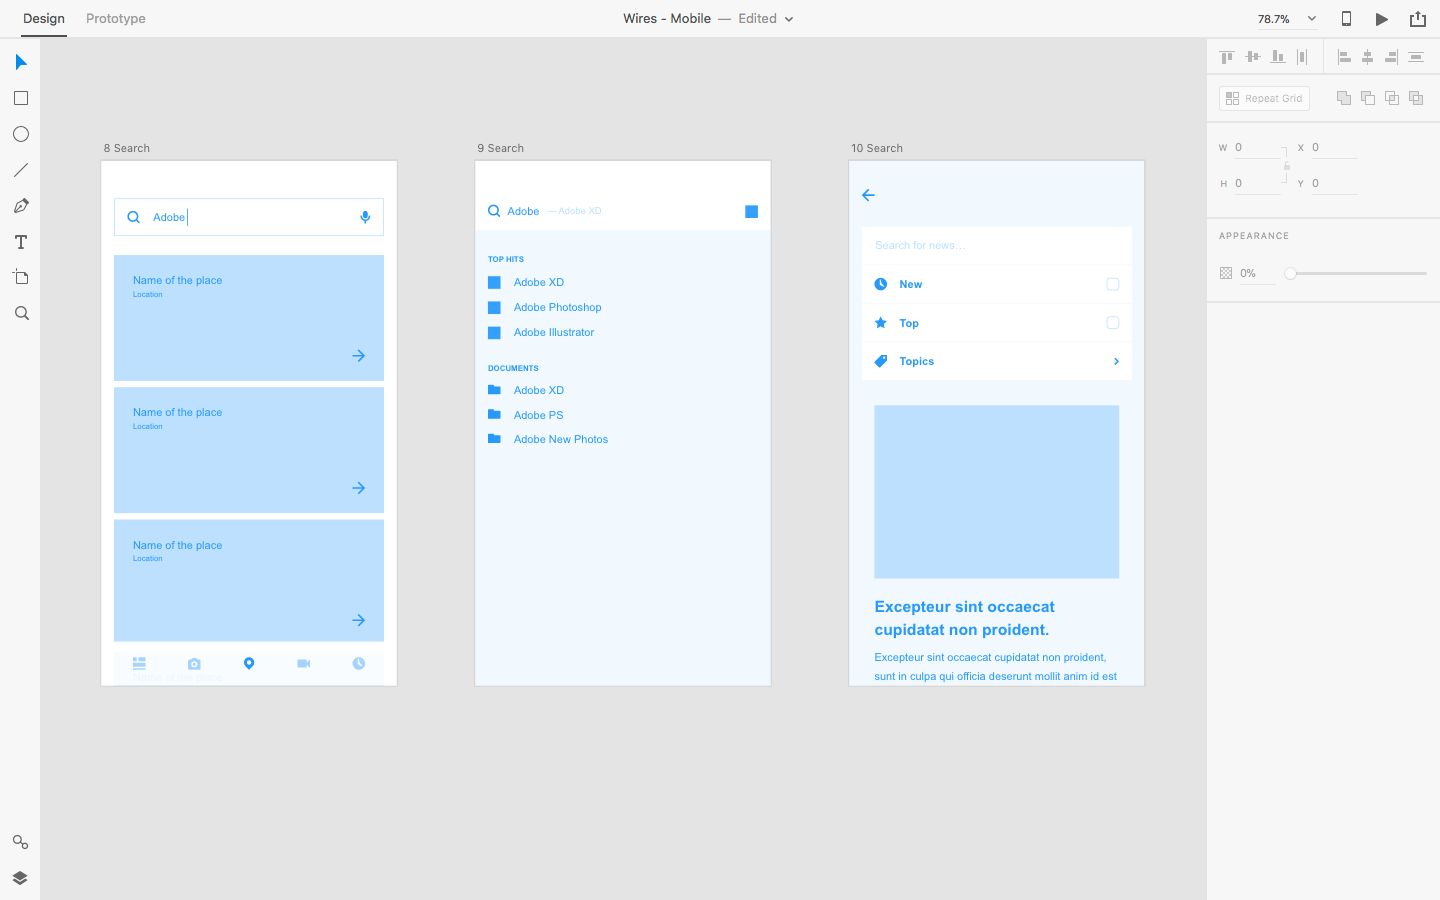 Wireframing and low-fidelity prototyping in Adobe XD